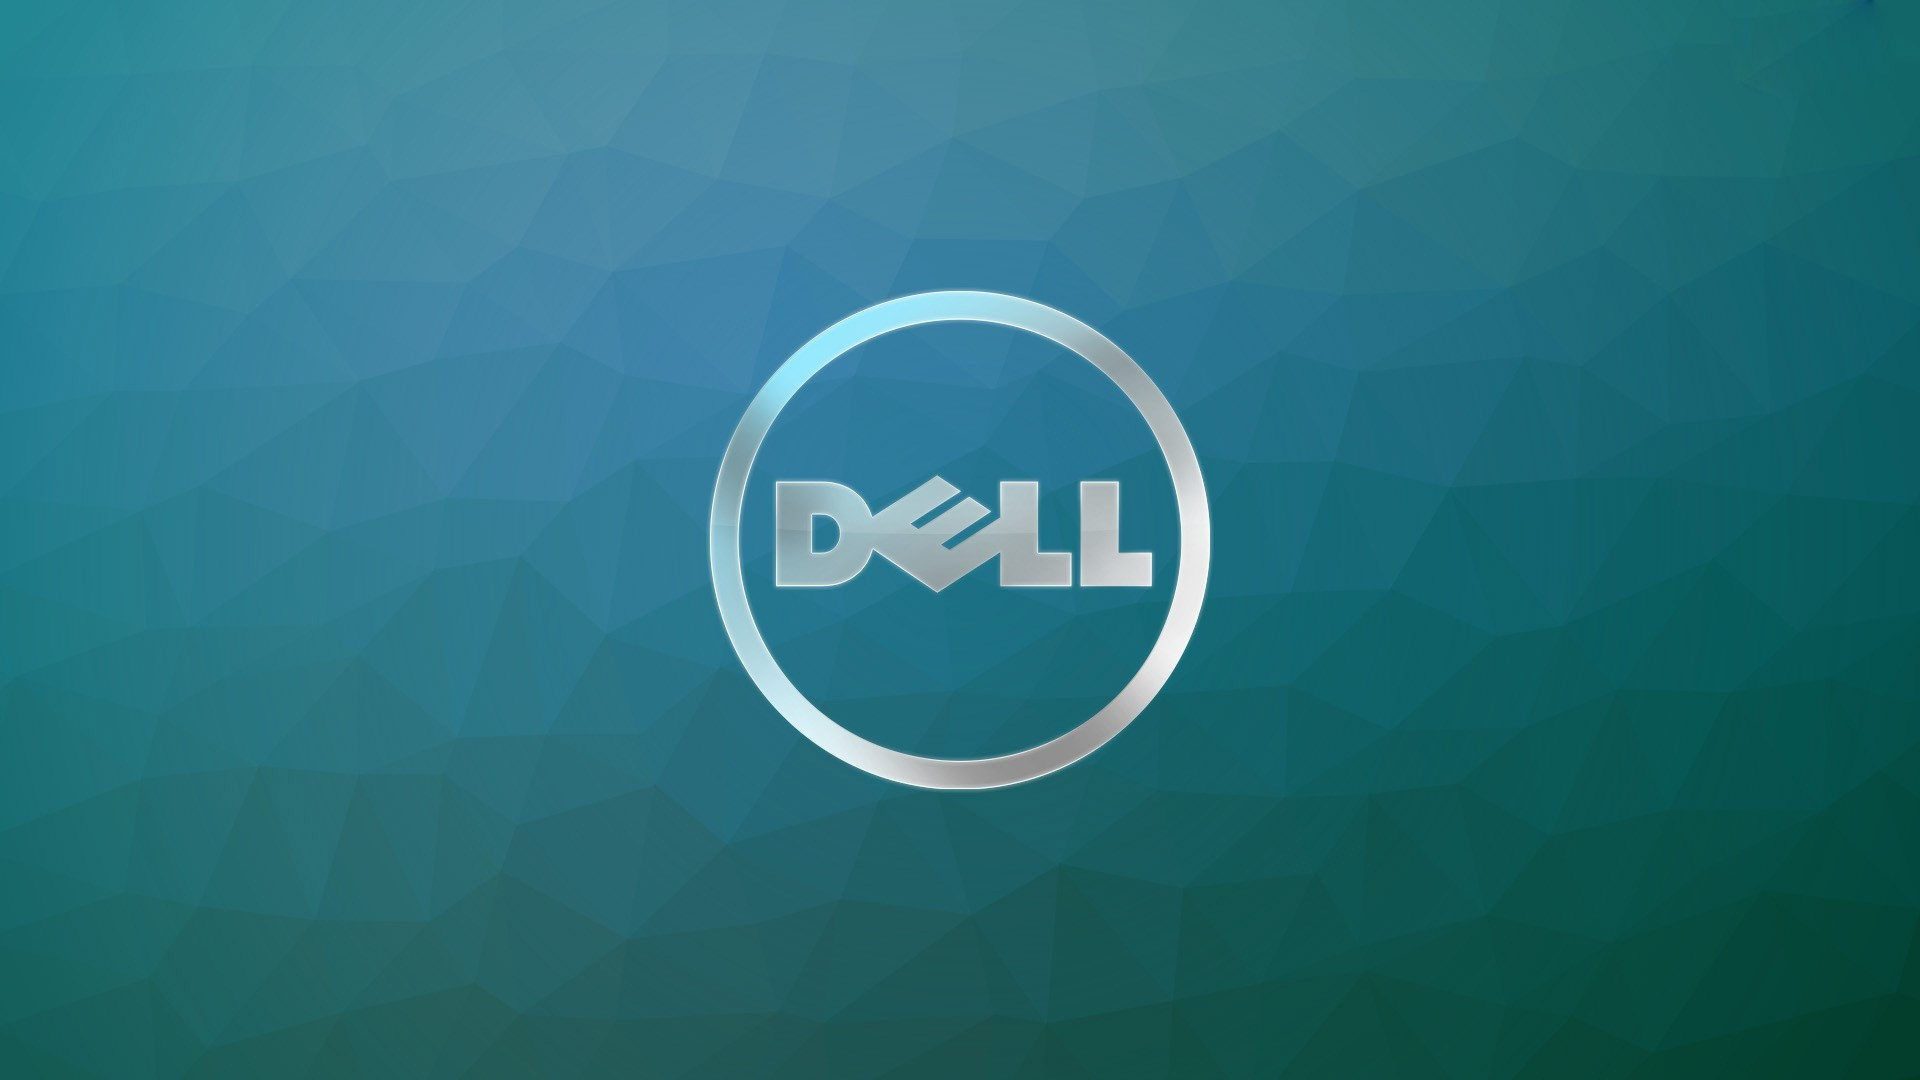 dell logo hd wallpapers